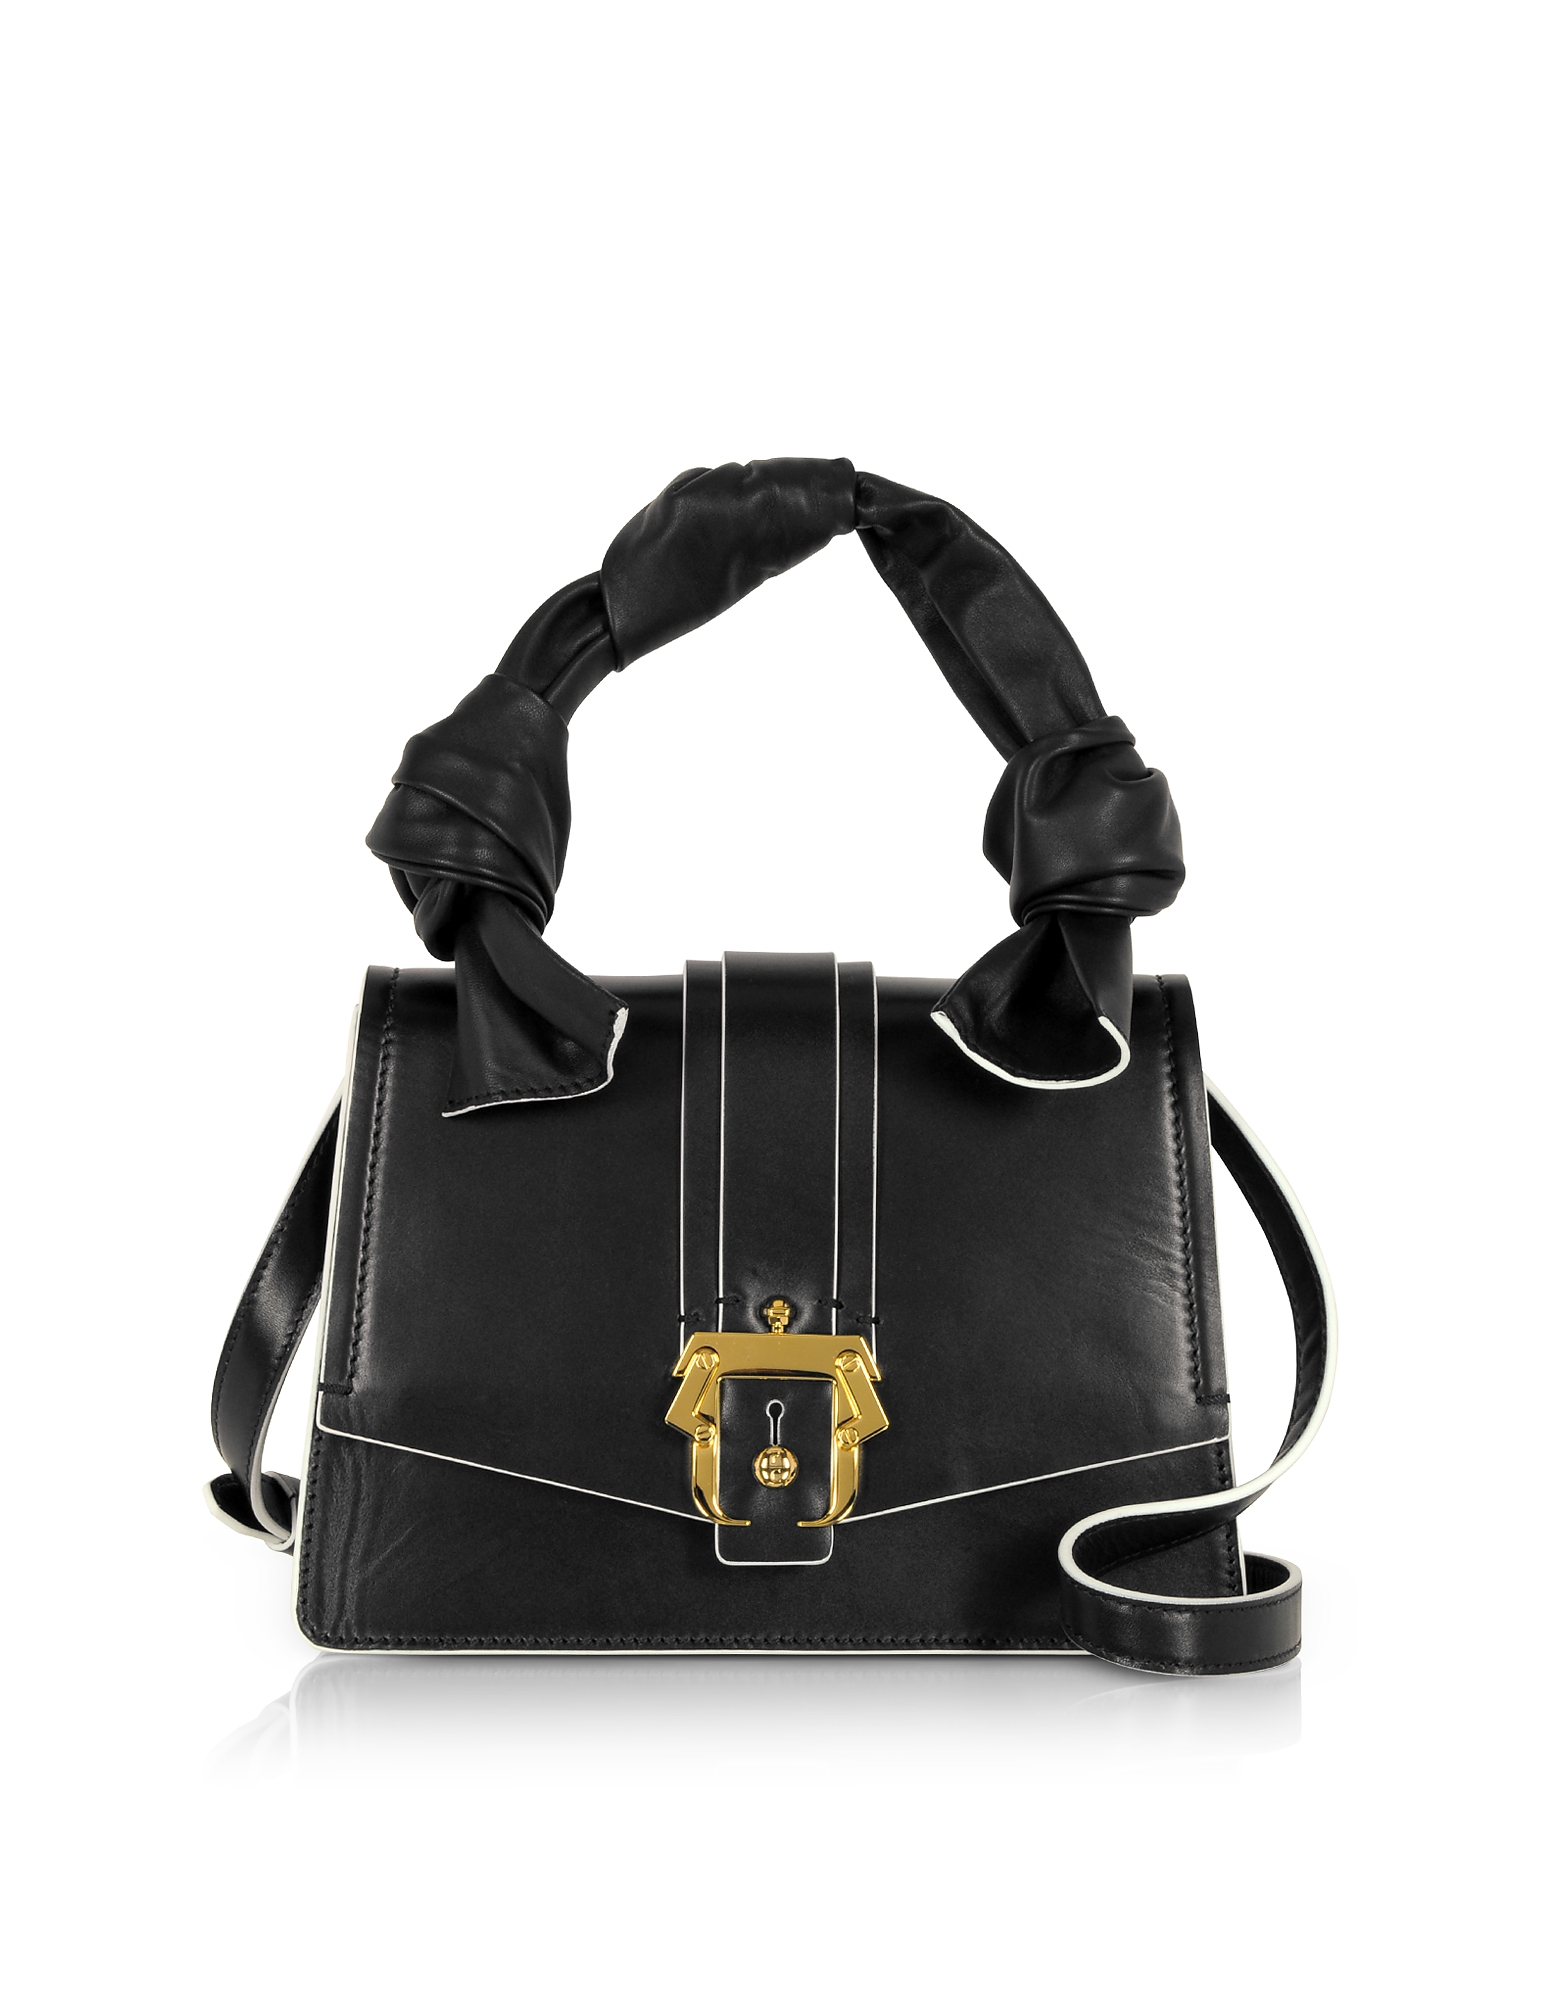 Image of Paula Cademartori Designer Handbags, Twi Twi Black Shoulder Bag